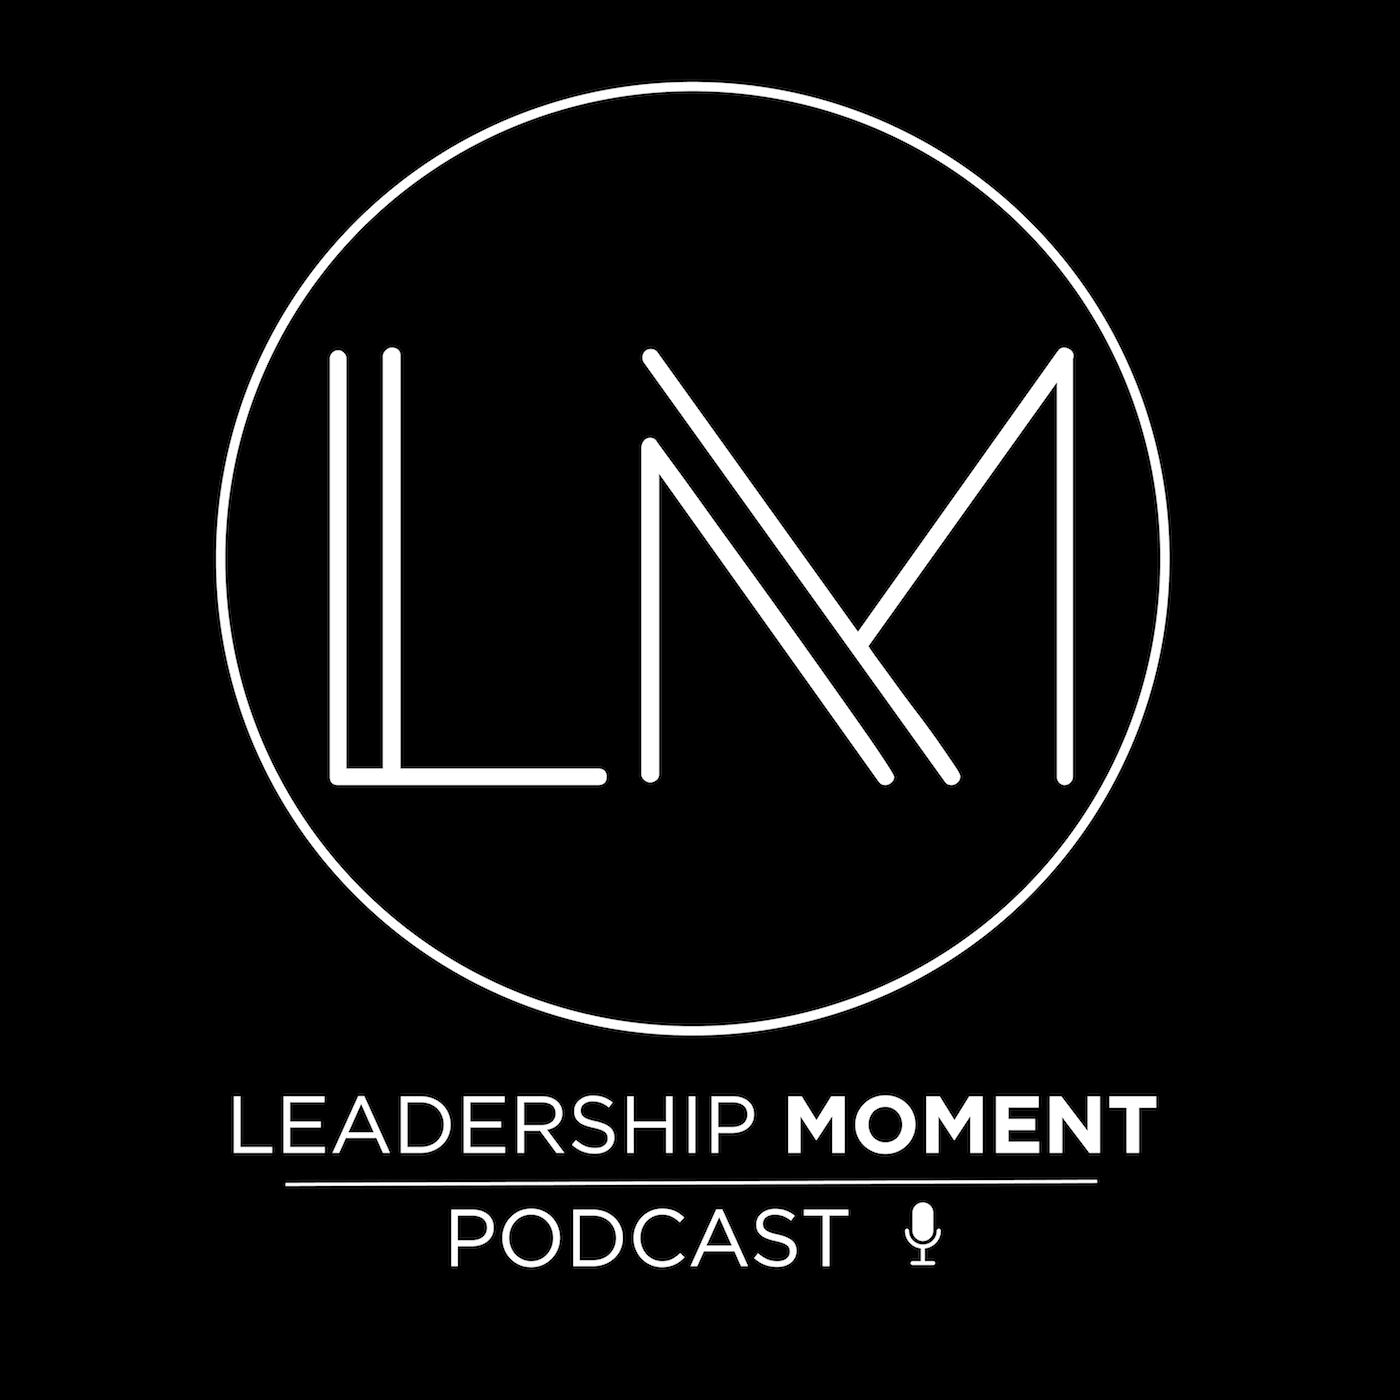 How Rich Mullins Had a Powerul Leadership Influence on Brian Morykon - LM0204